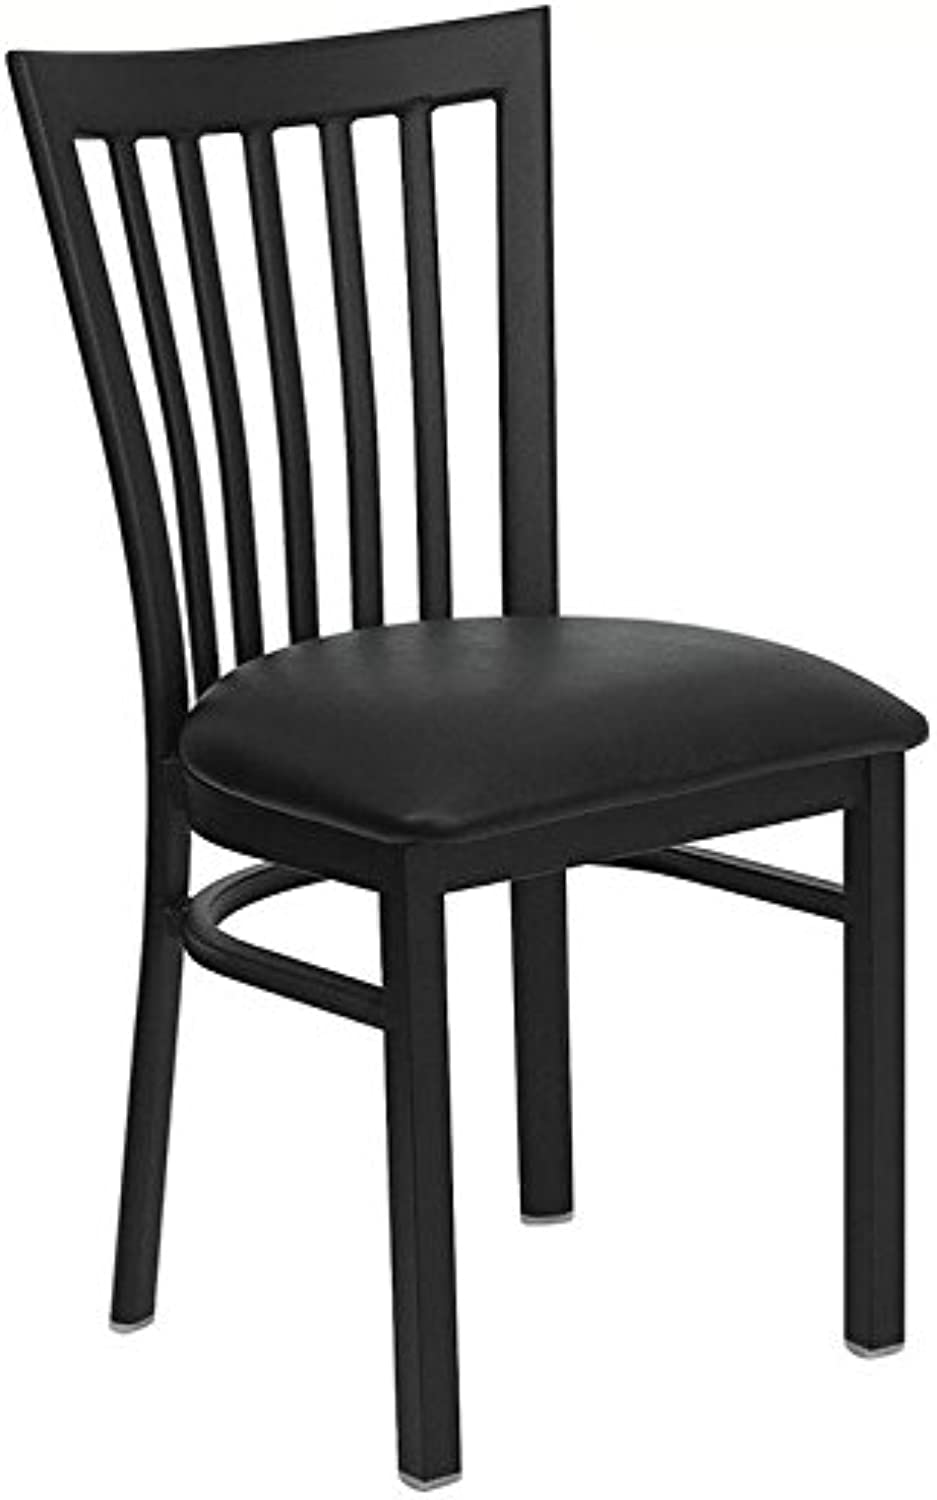 Bowery Hill School House Back Metal Dining Chair in Black